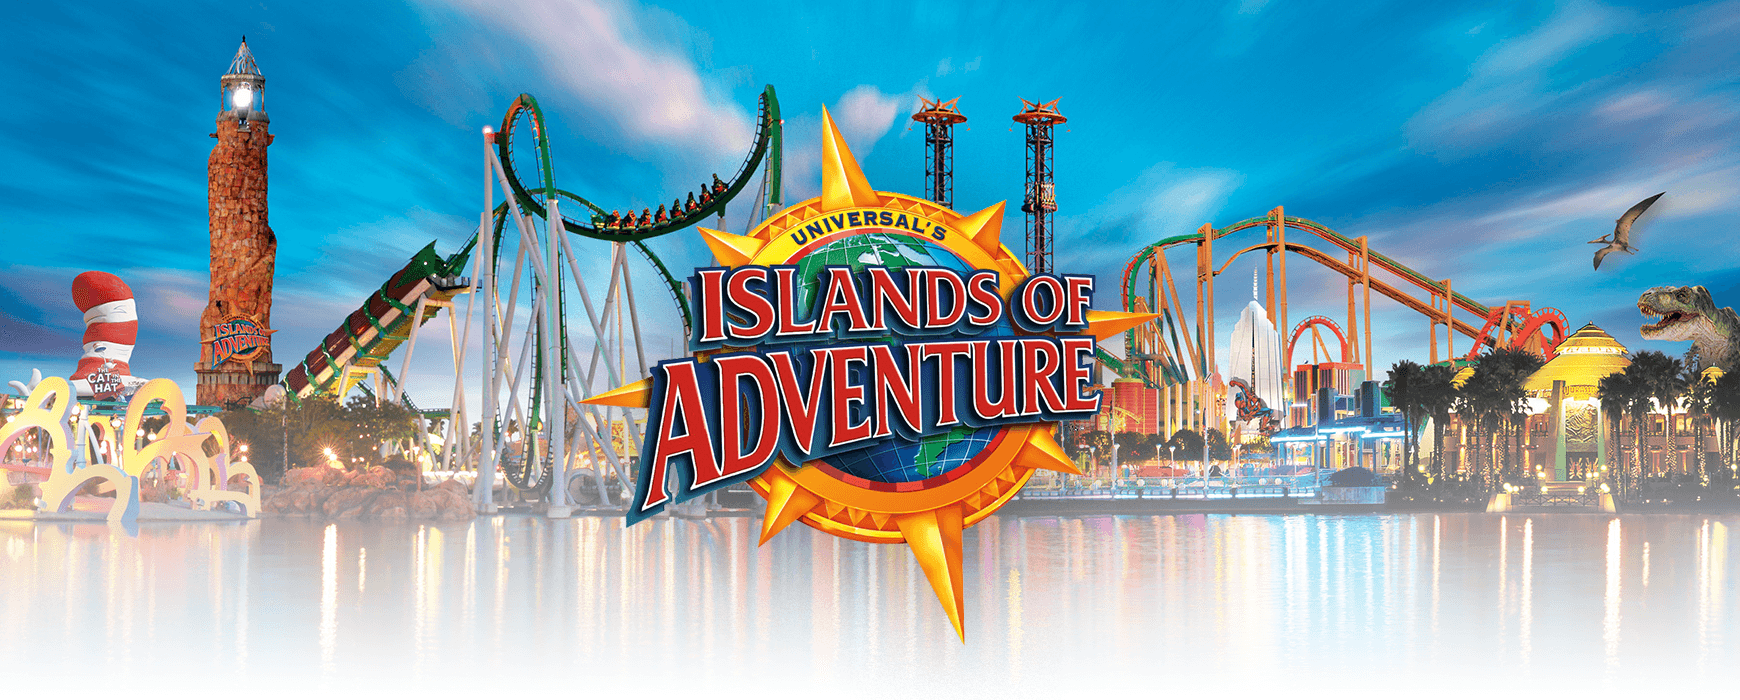 Islands of Adventure Cover.